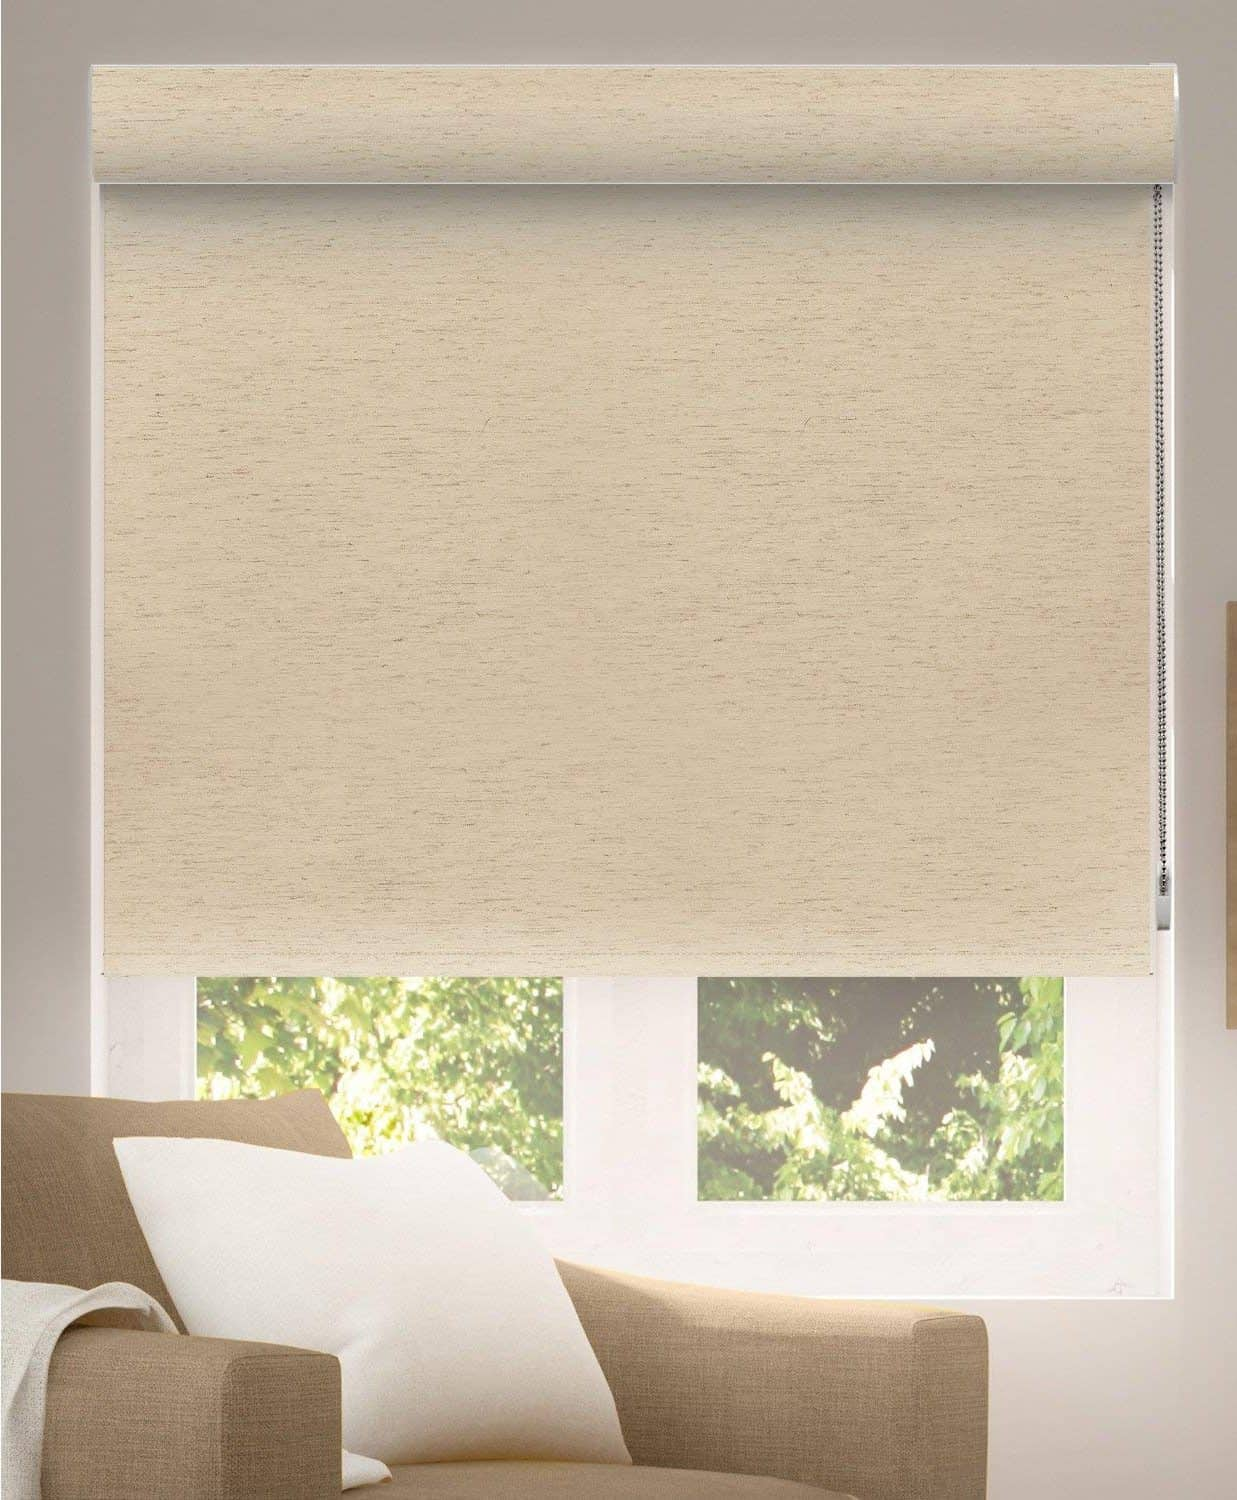 Enjoy the soft ambiance of this roller shade that only light filtering fabrics can create with these airy yet privacy fabrics.